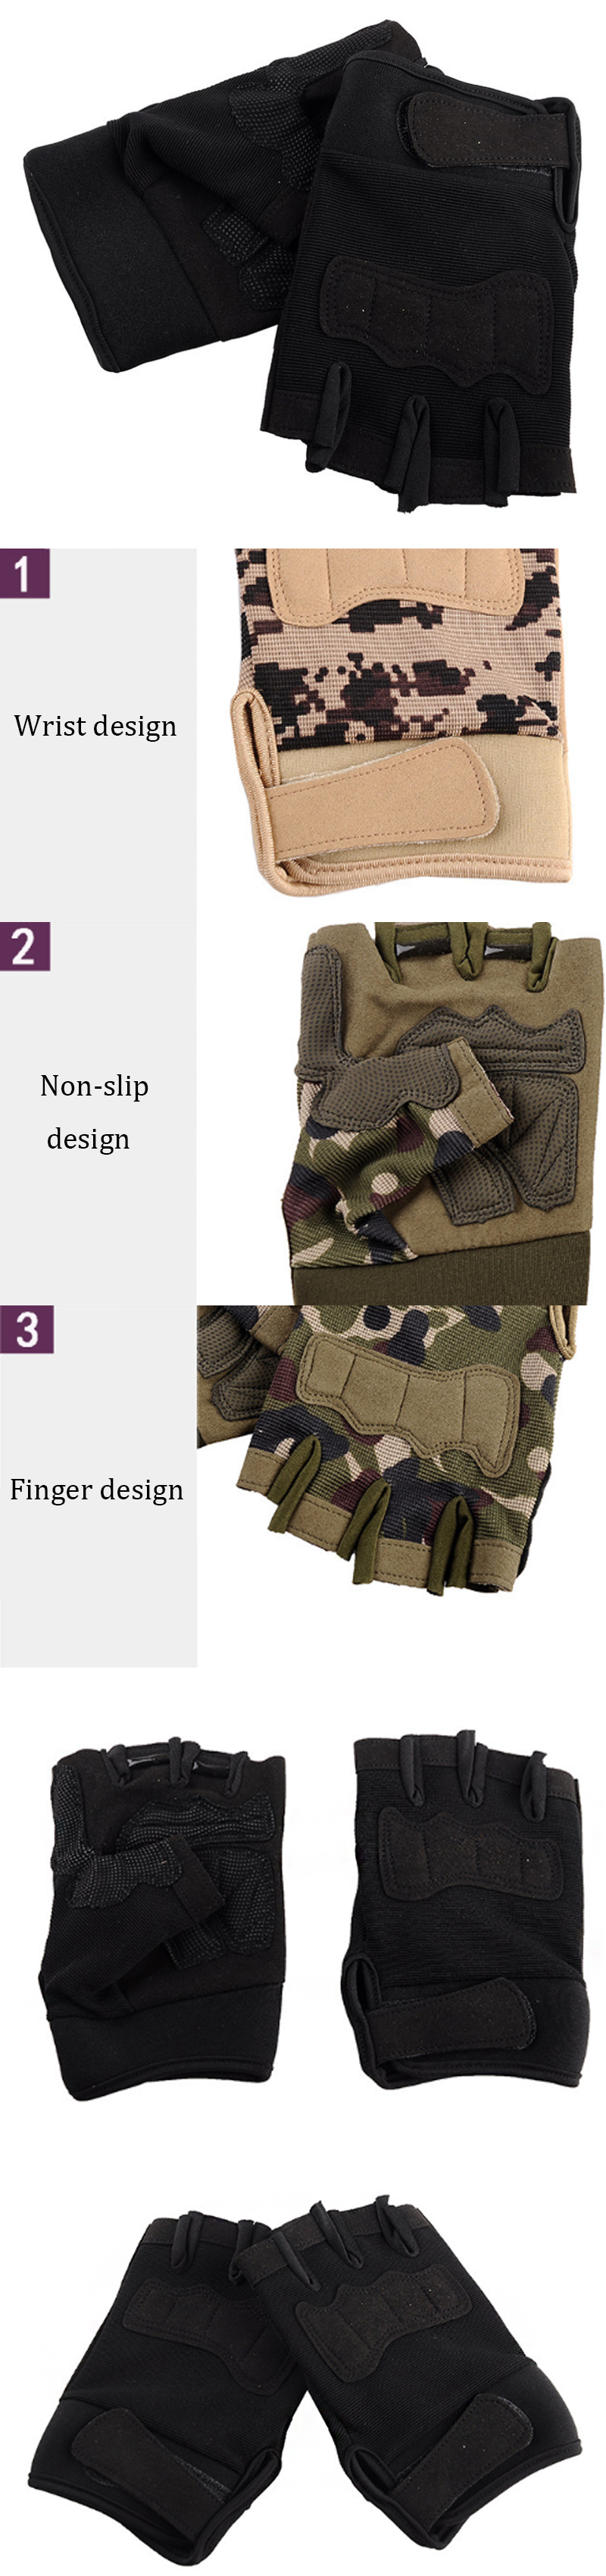 KALOAD 1 Pair Tactical Glove Military Sports Climbing Cycling Fitness Anti-skid Gloves Half Finger Gloves